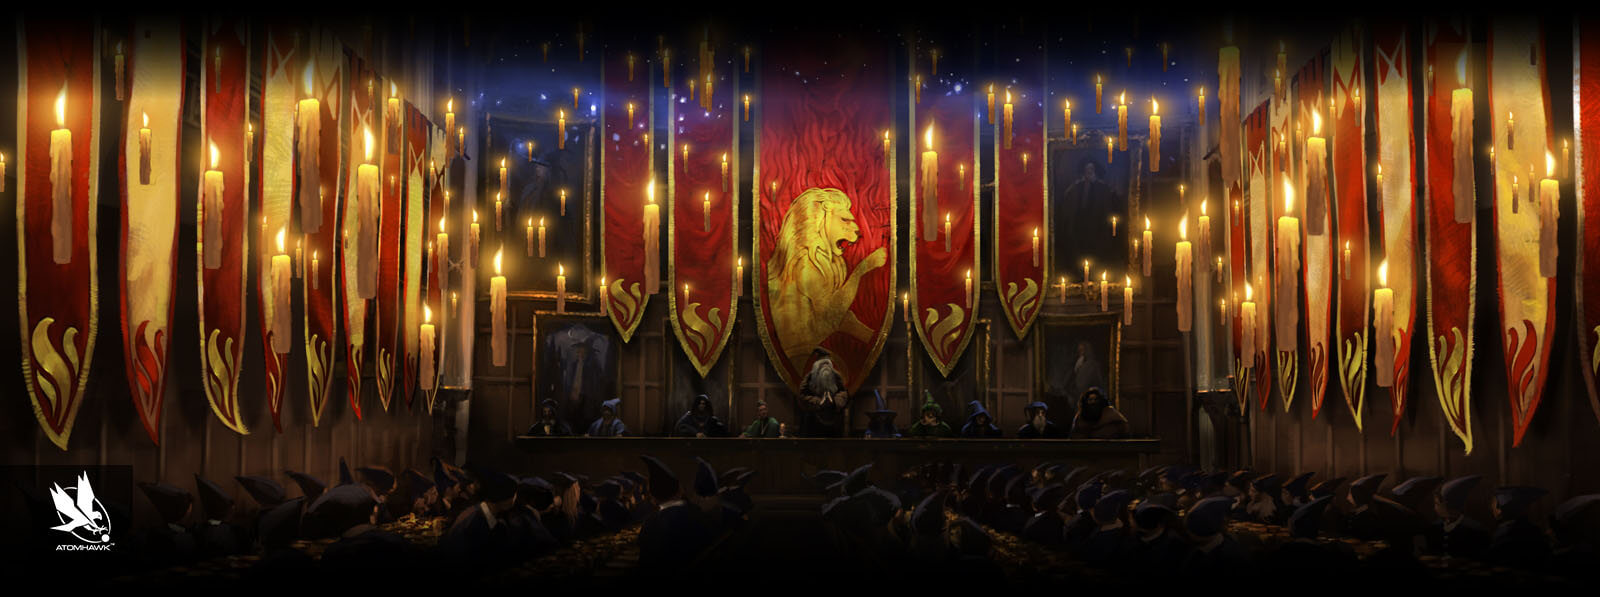 Pottermore - Concept Art - End of Term Feast